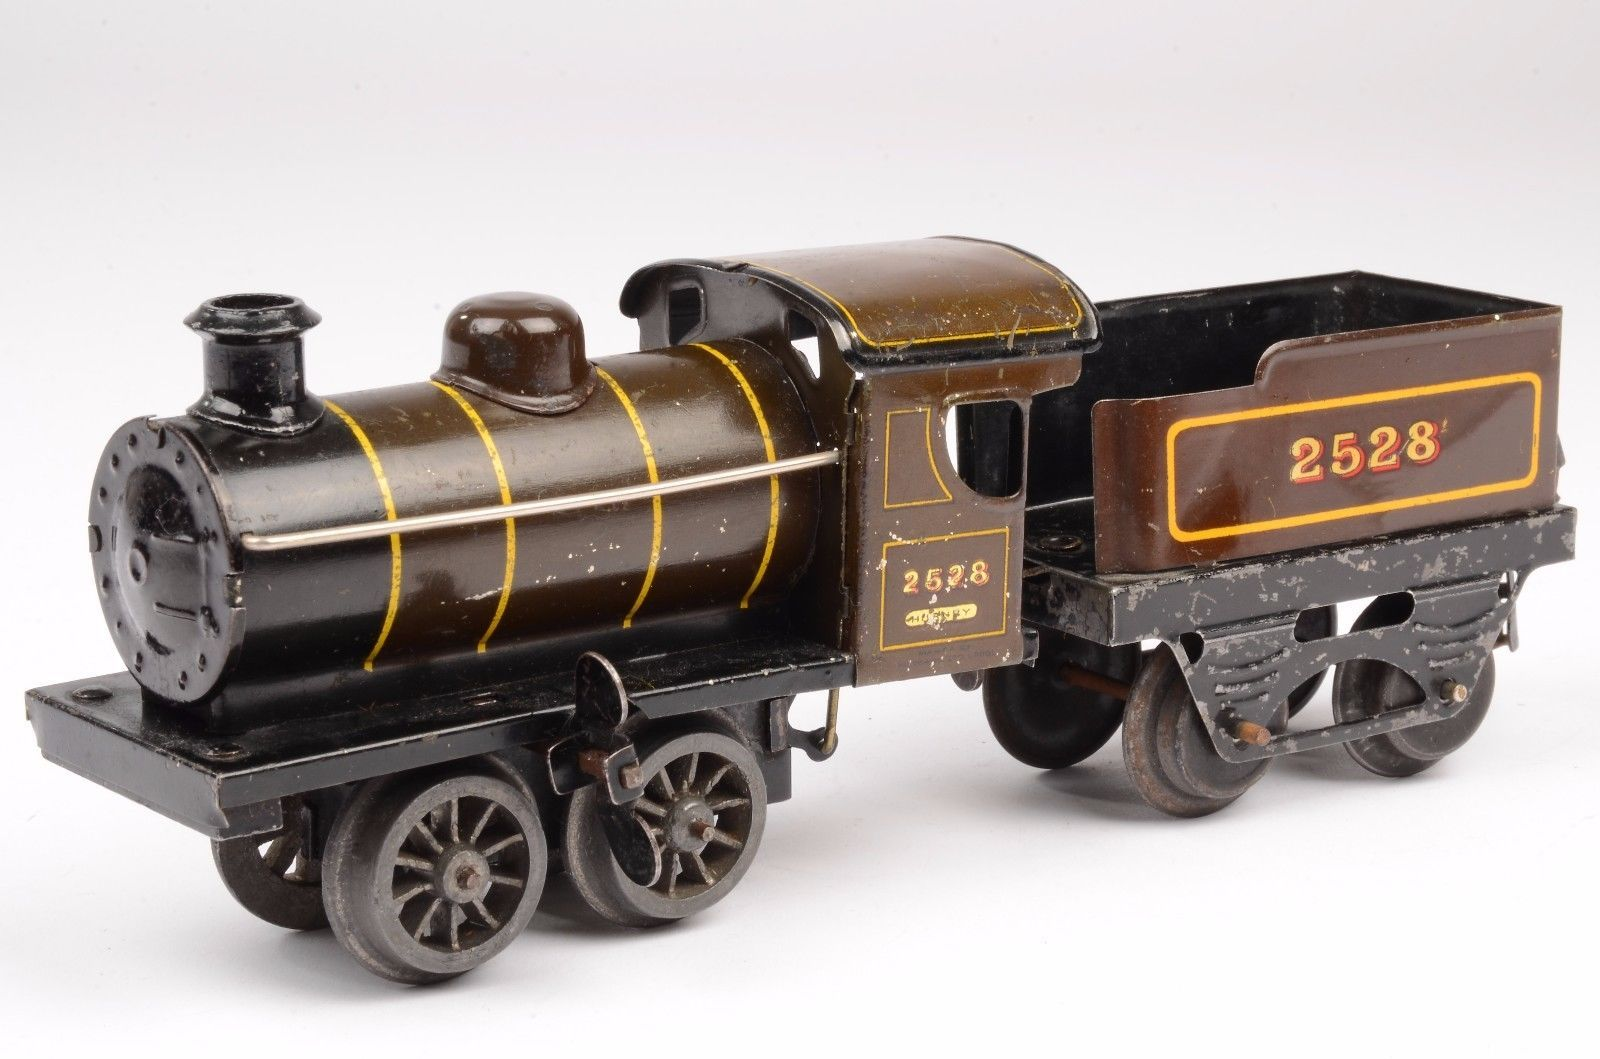 A French Hornby O Gauge M Series Brown Clockwork Loco And Tender 2528 Made In England Circa 1927 28 In Working Order The Loco Is In Good Overall